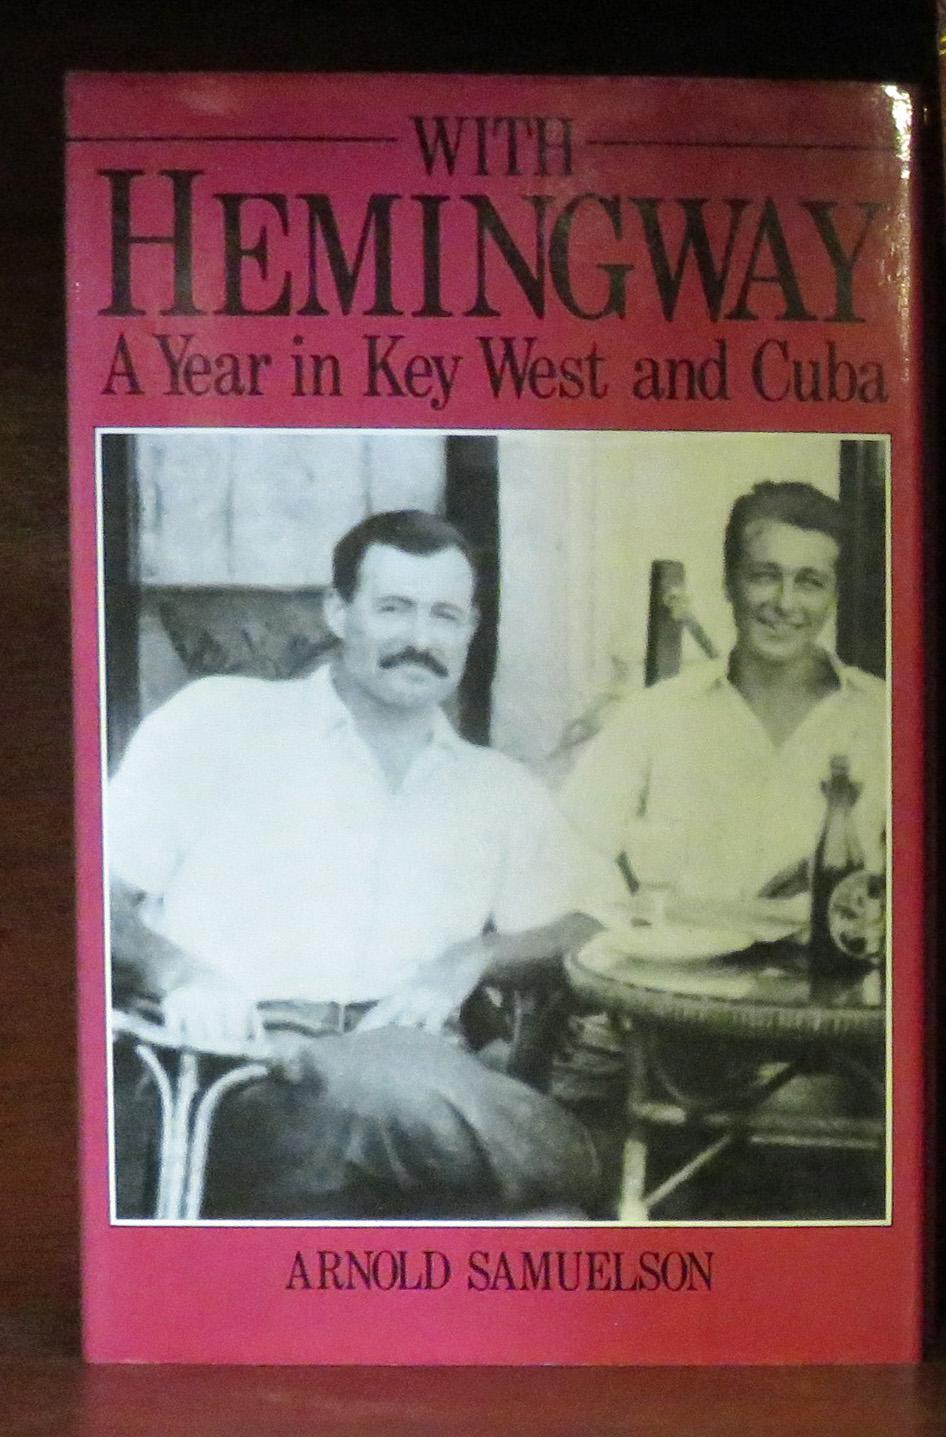 With Heminway A Year in Key West and Cuba